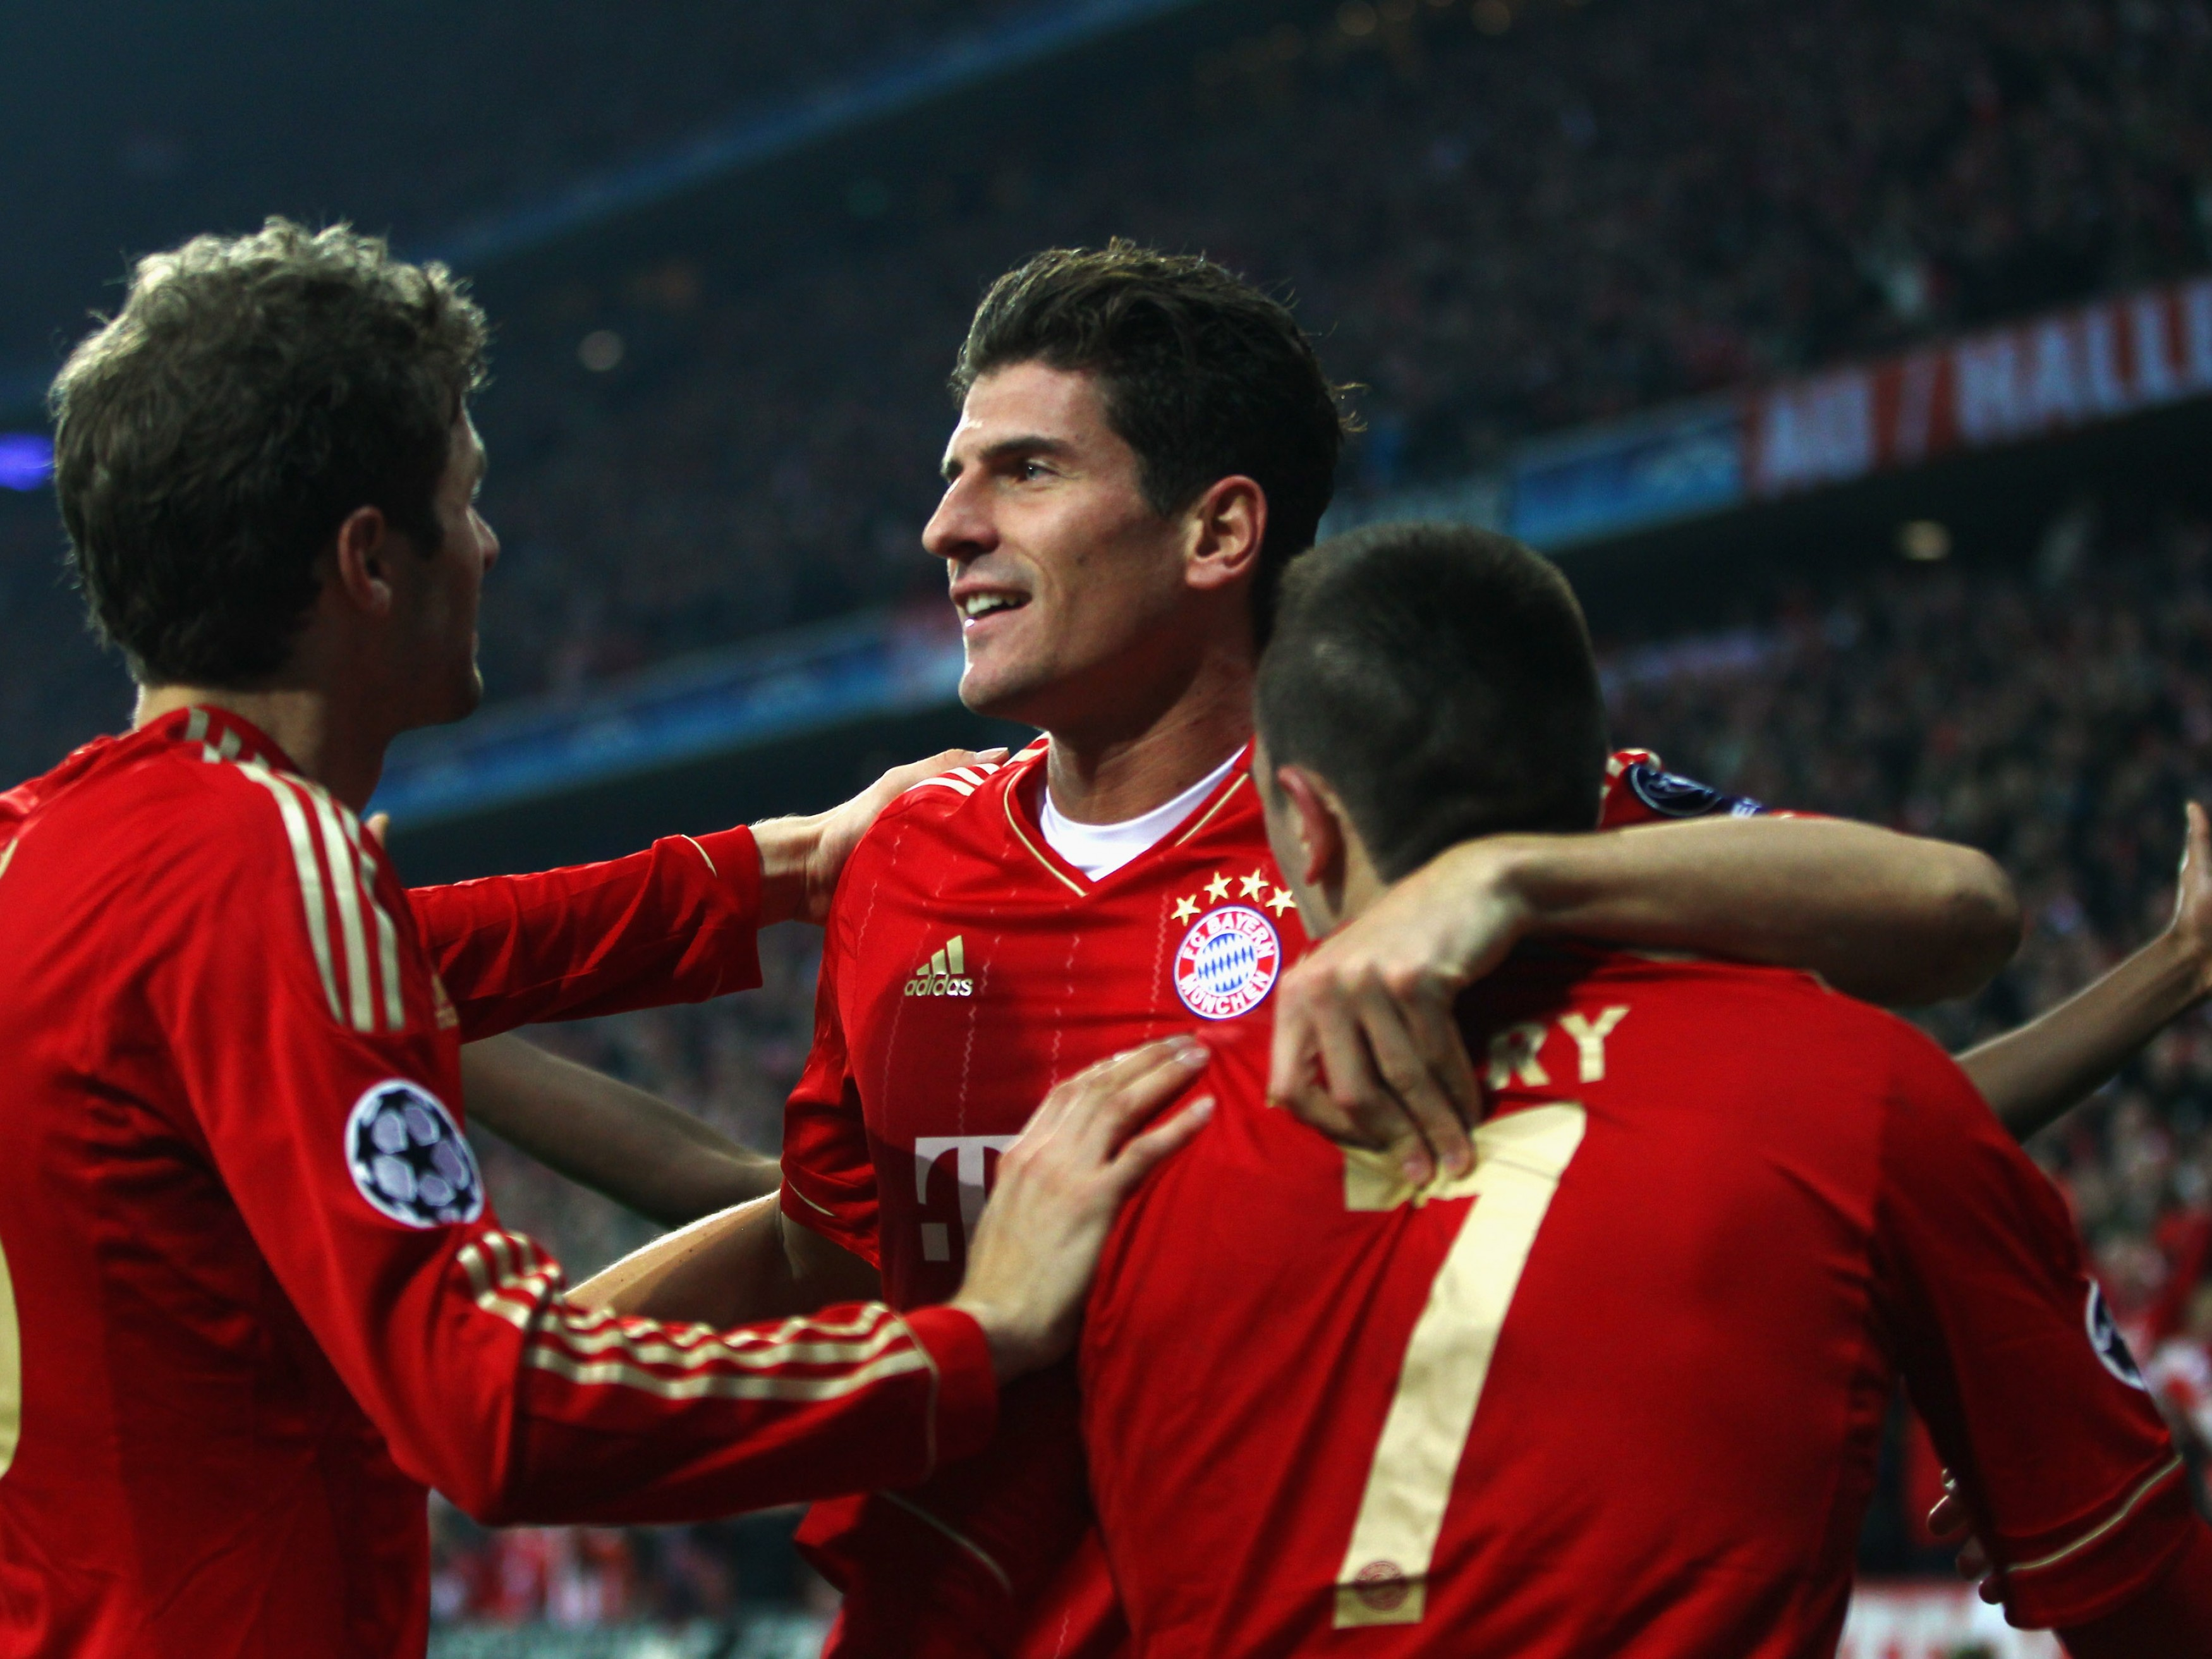 FC-Bayern-Muenchen-v-FC-Basel-1893-UEFA-Champions-League-Round-of-16-1570010622.jpg